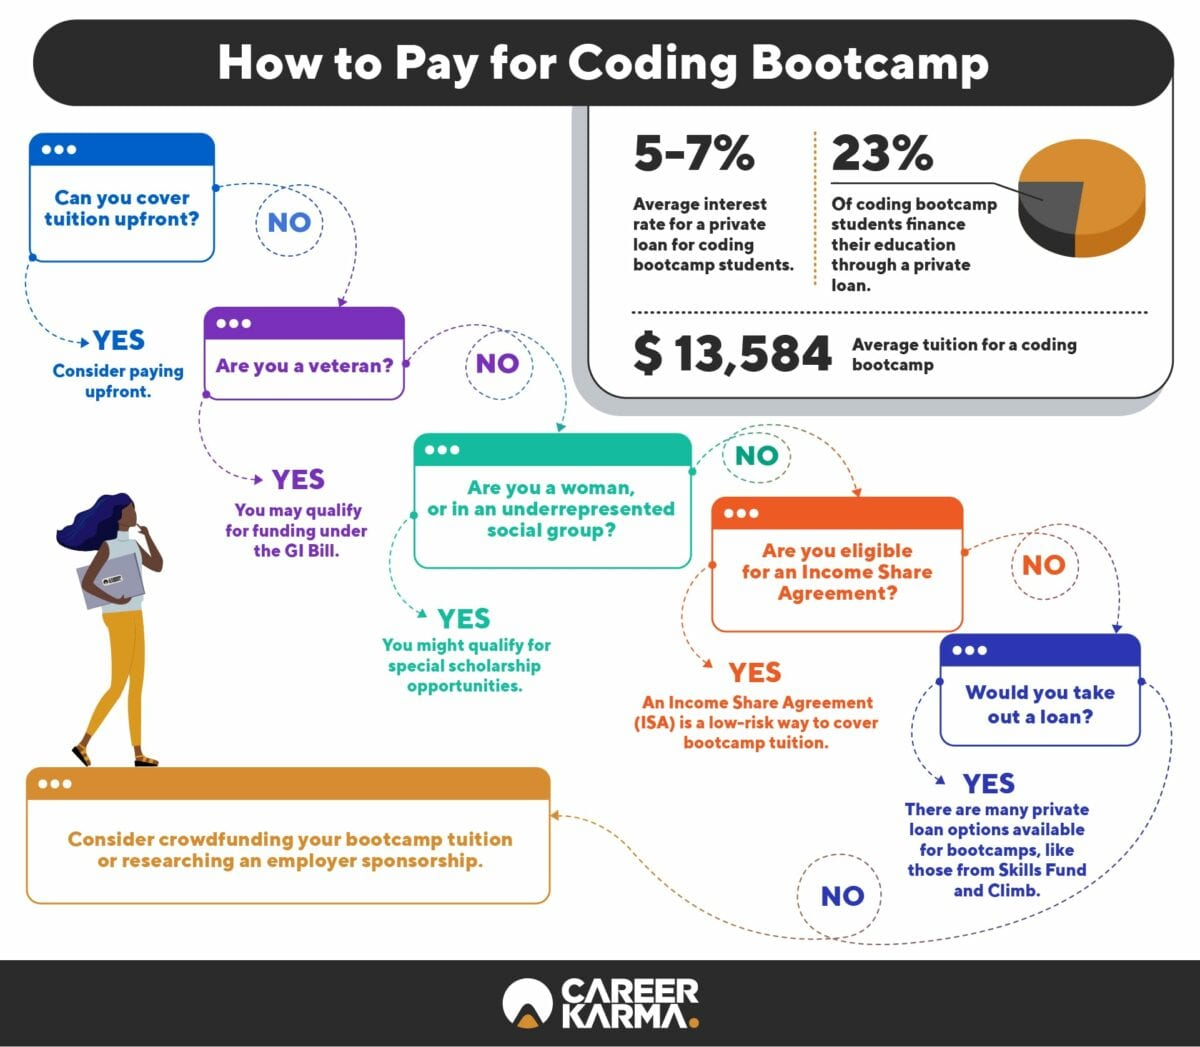 how to pay for coding bootcamp infographic